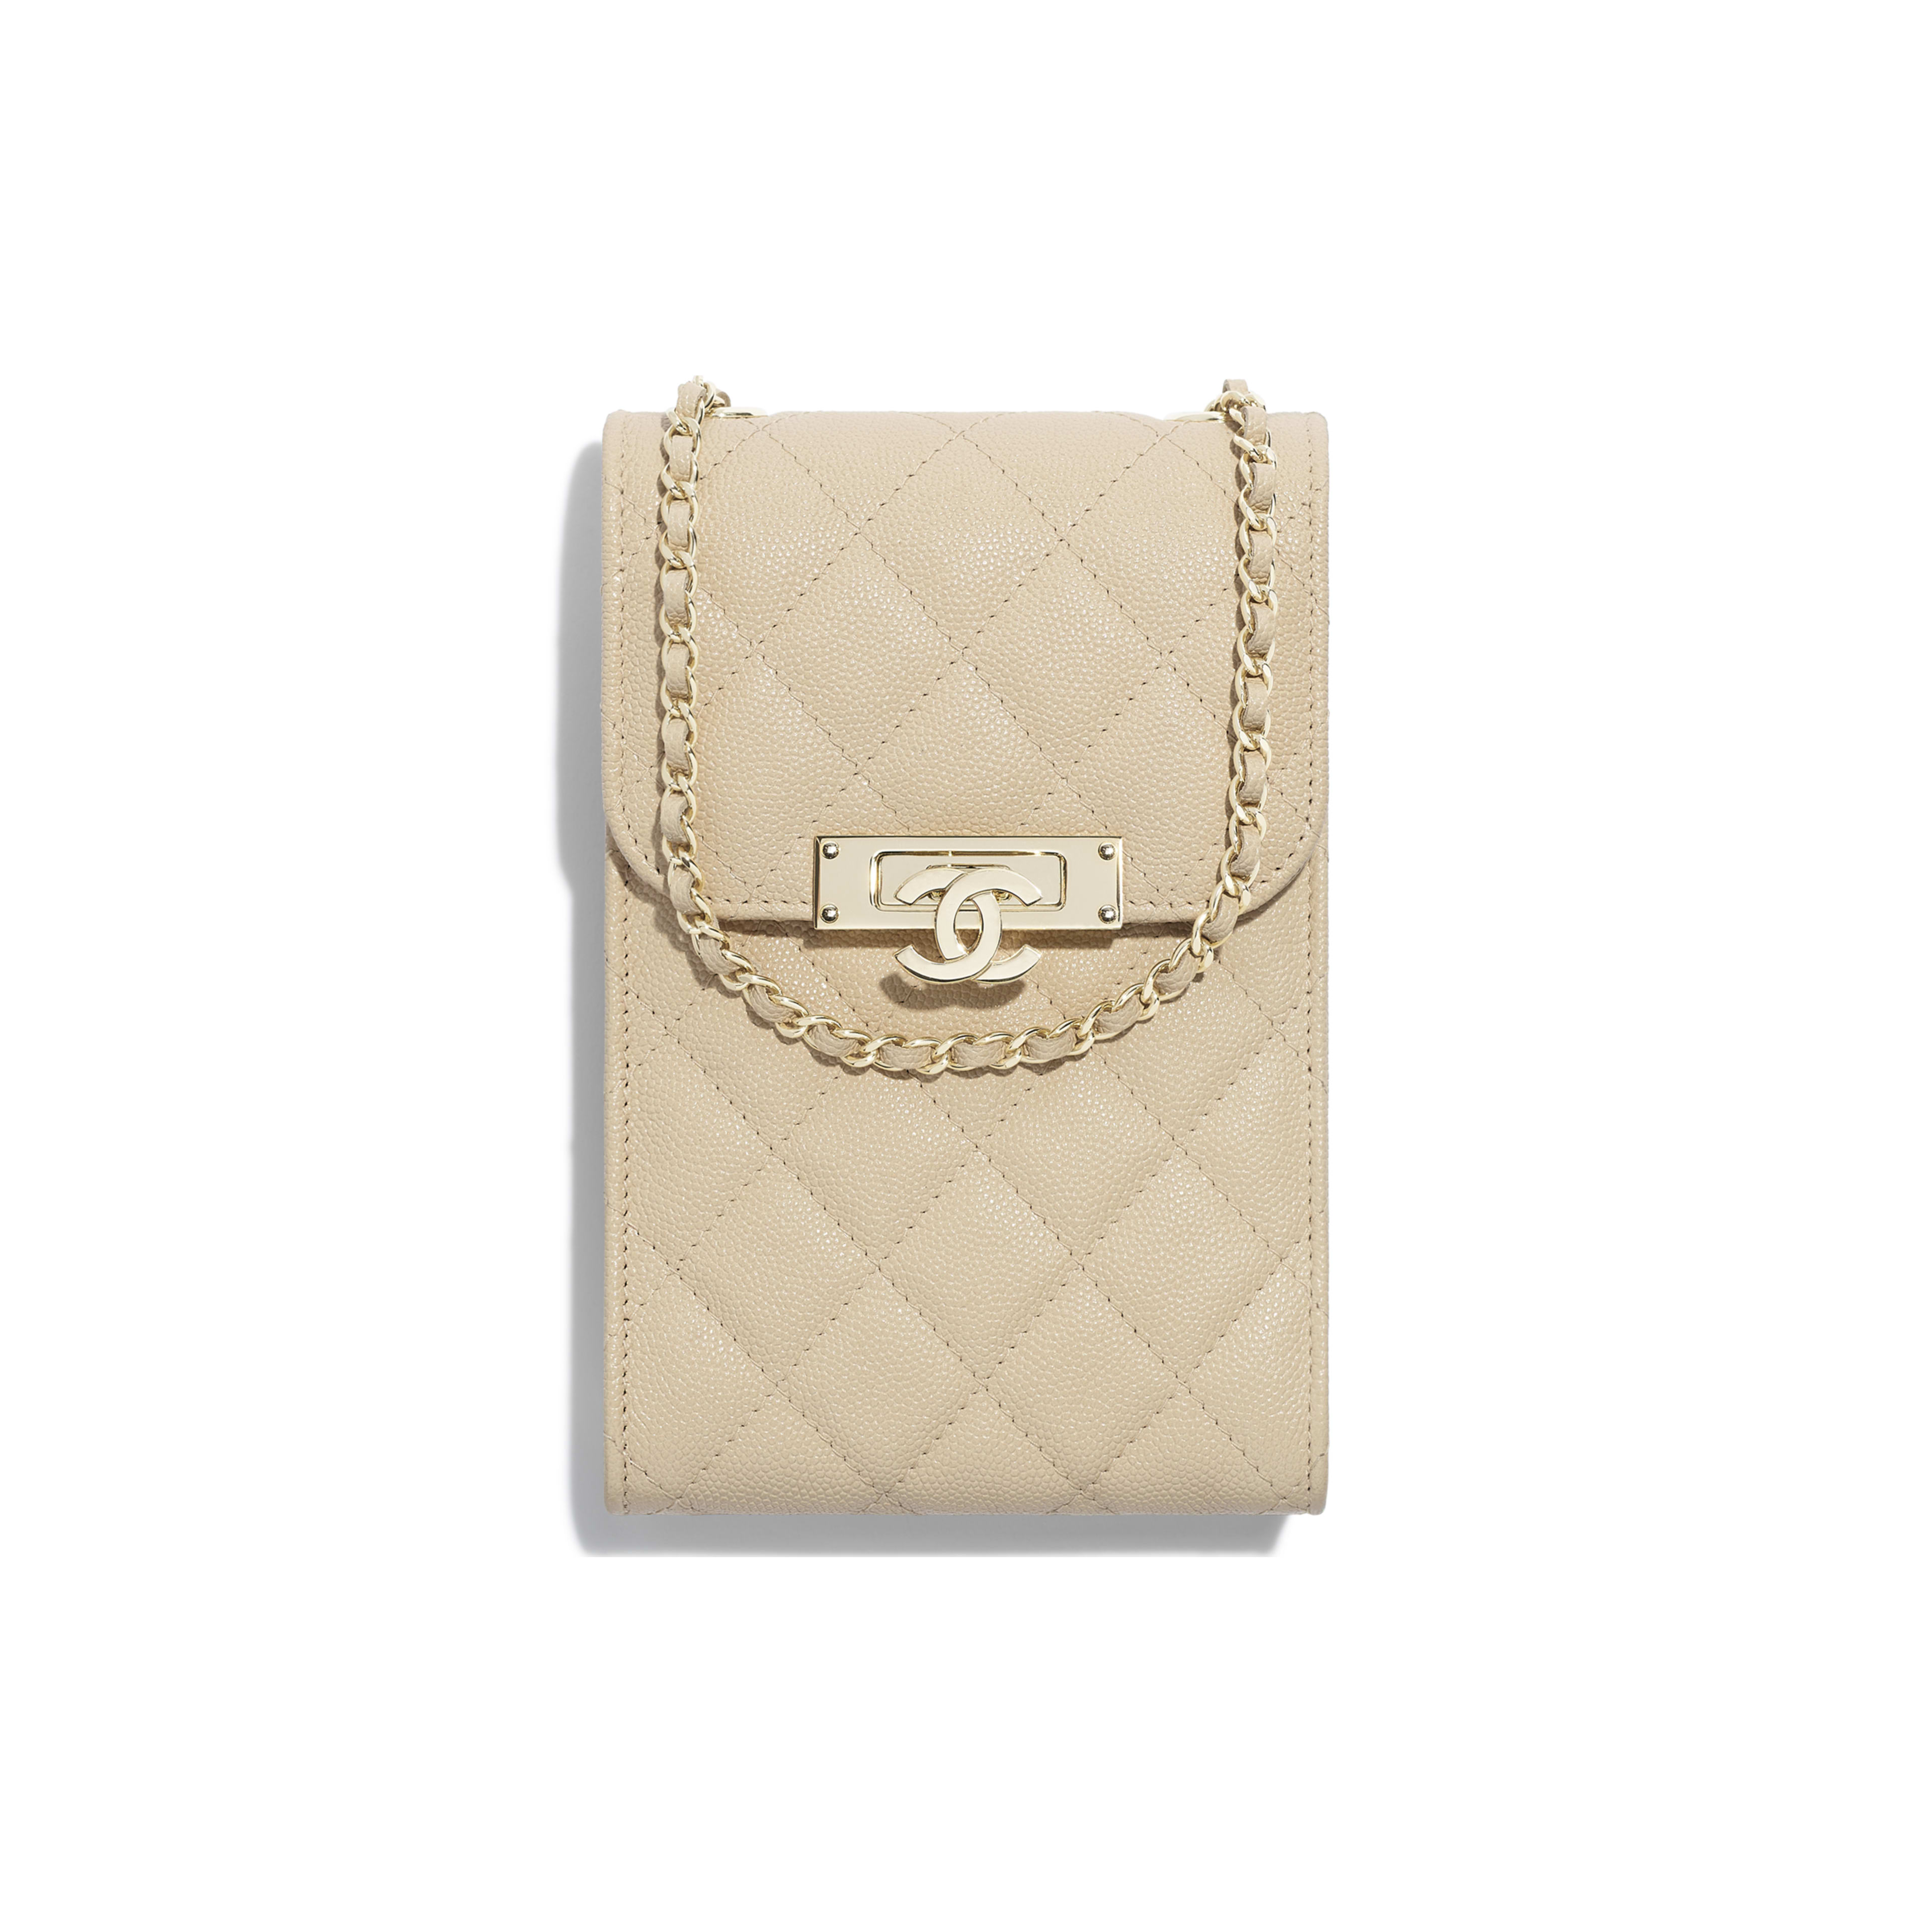 Clutch With Chain - Beige - Grained Goatskin & Gold Metal - Default view - see full sized version